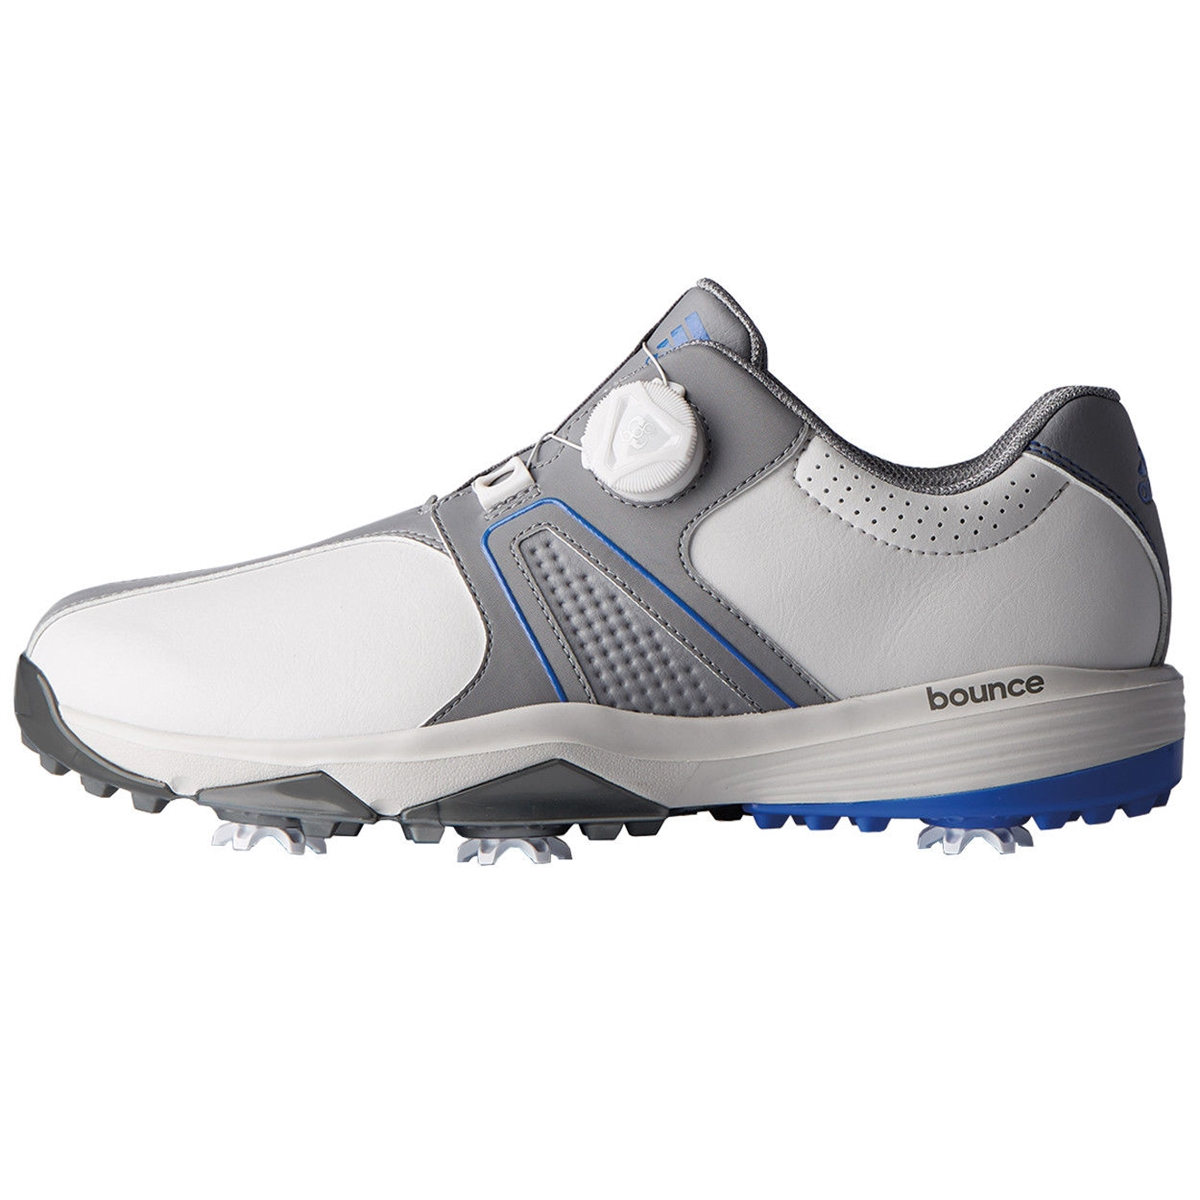 Adidas 360 Traxion BOA Light Grey/Dark Grey/Hi-Res Blue